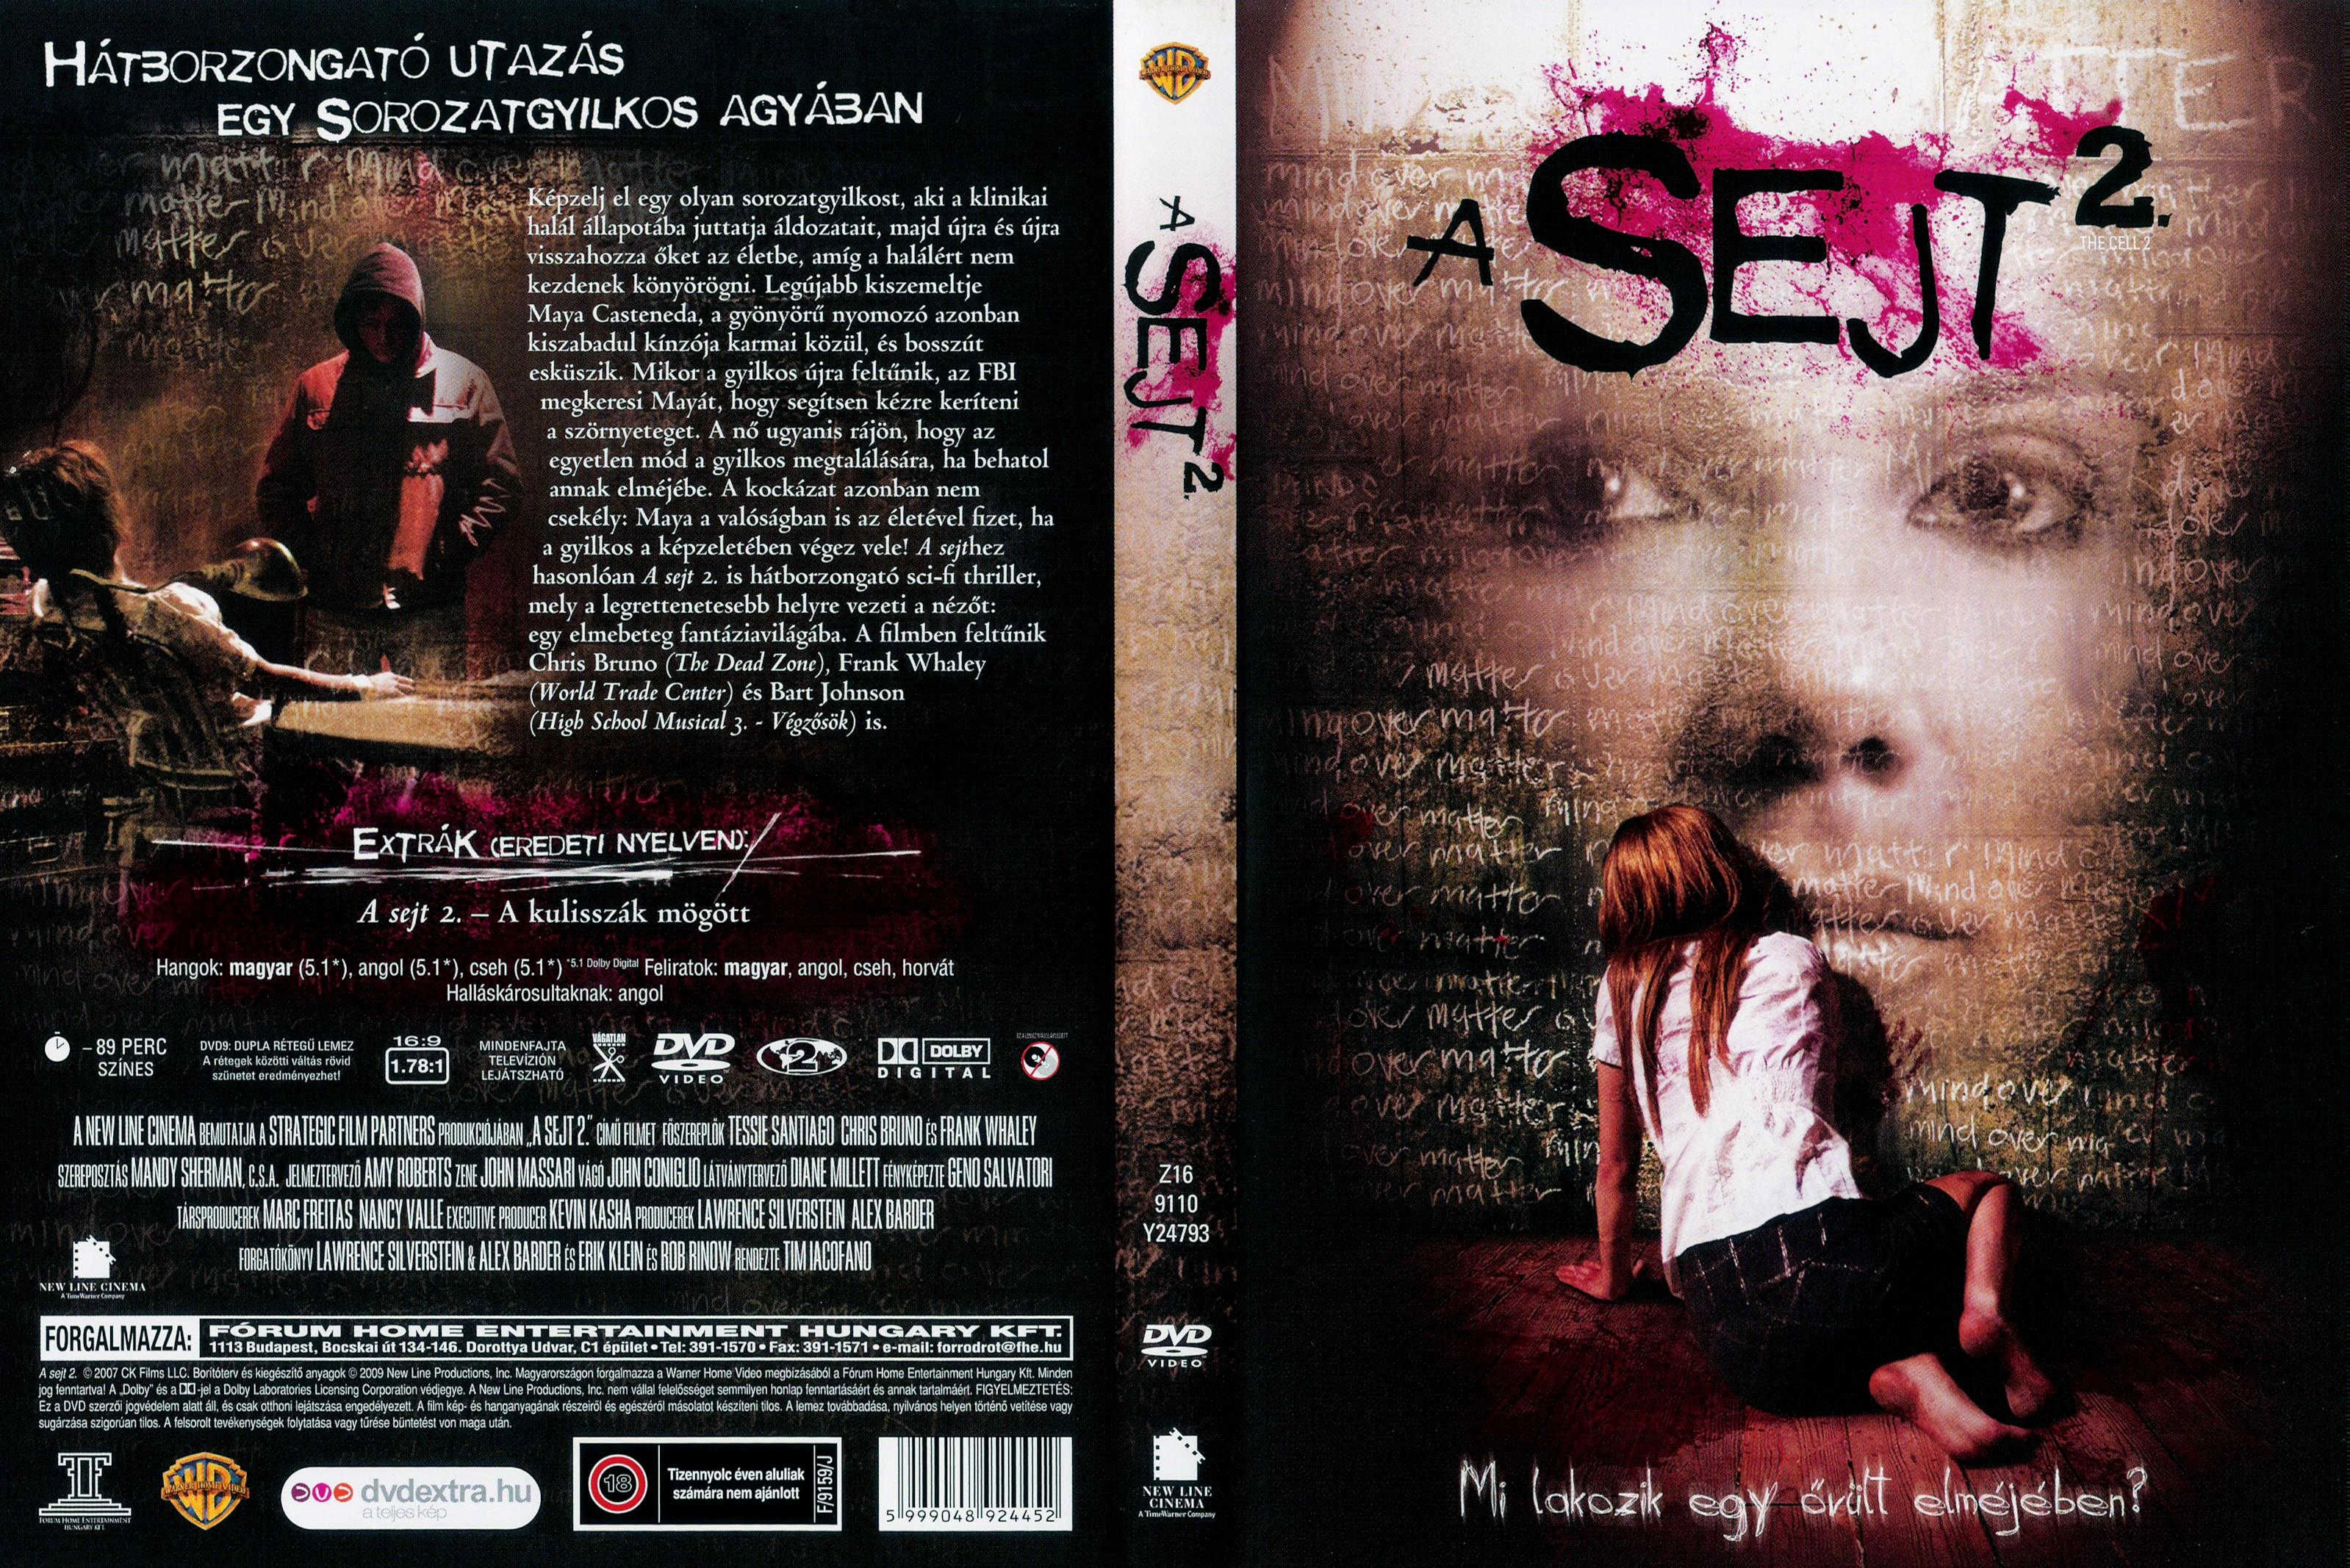 657A_sejt_2._Front_Covers.jpg